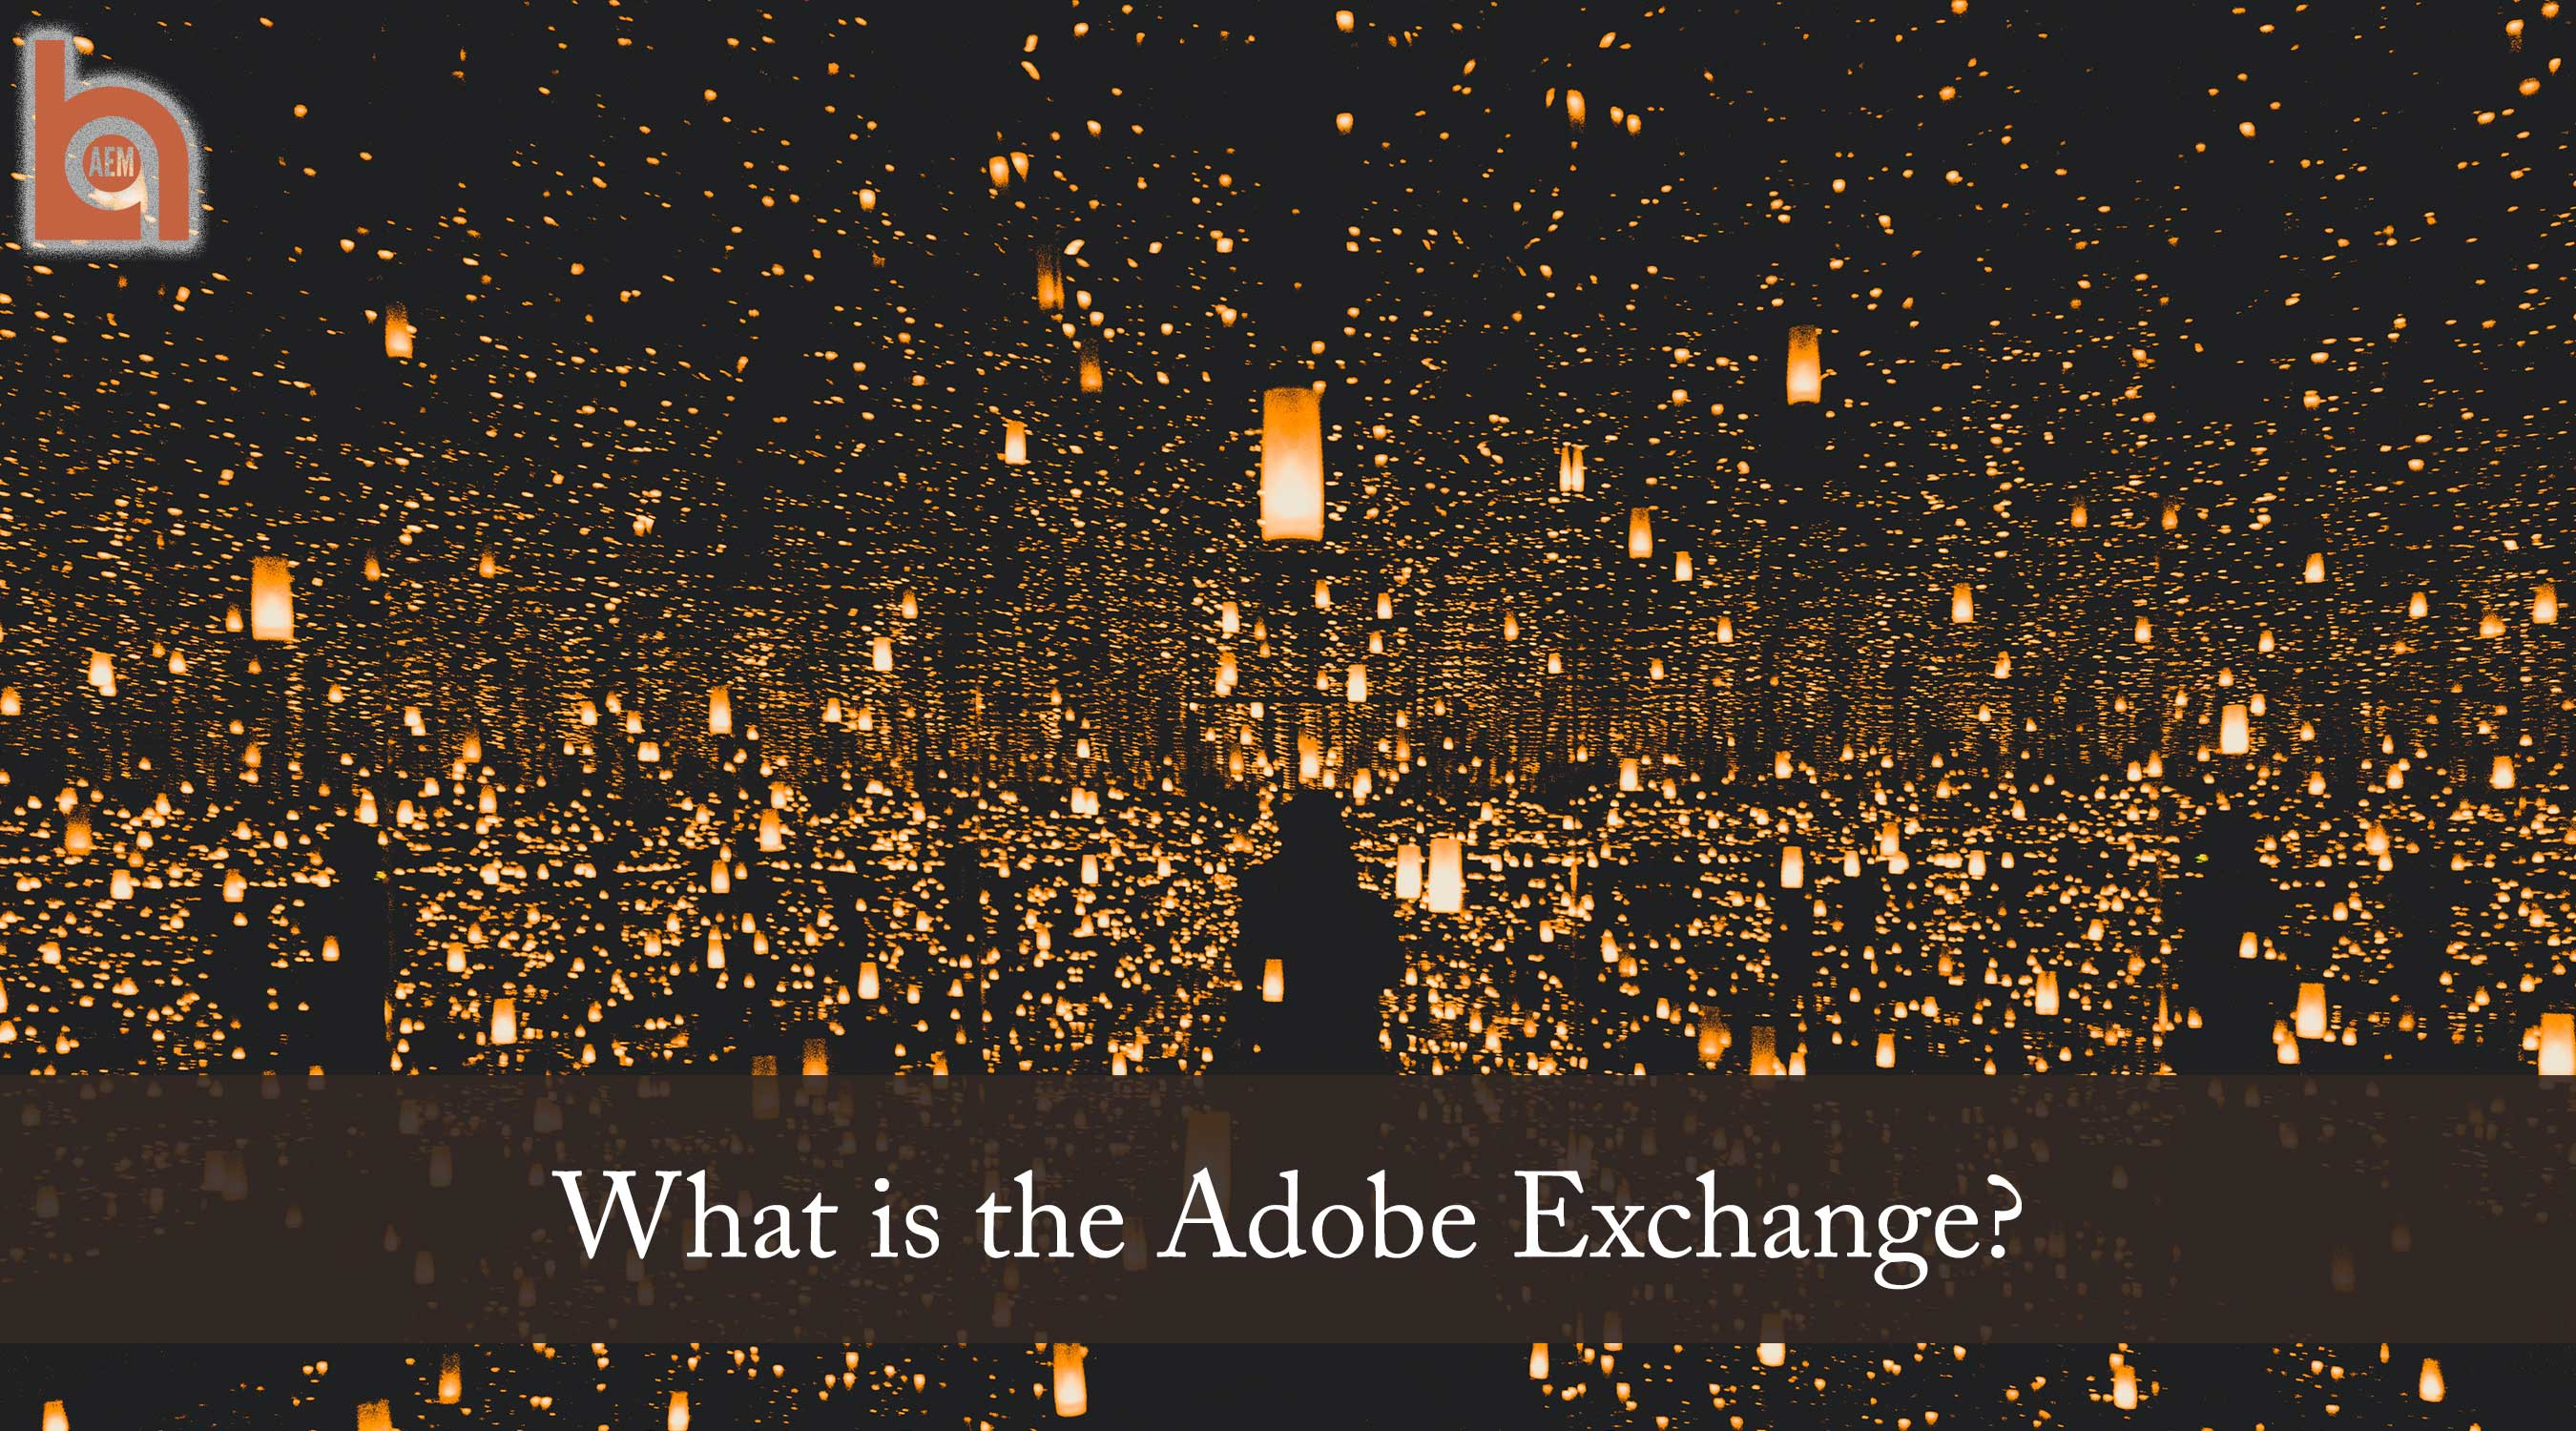 What is the Adobe Exchange?